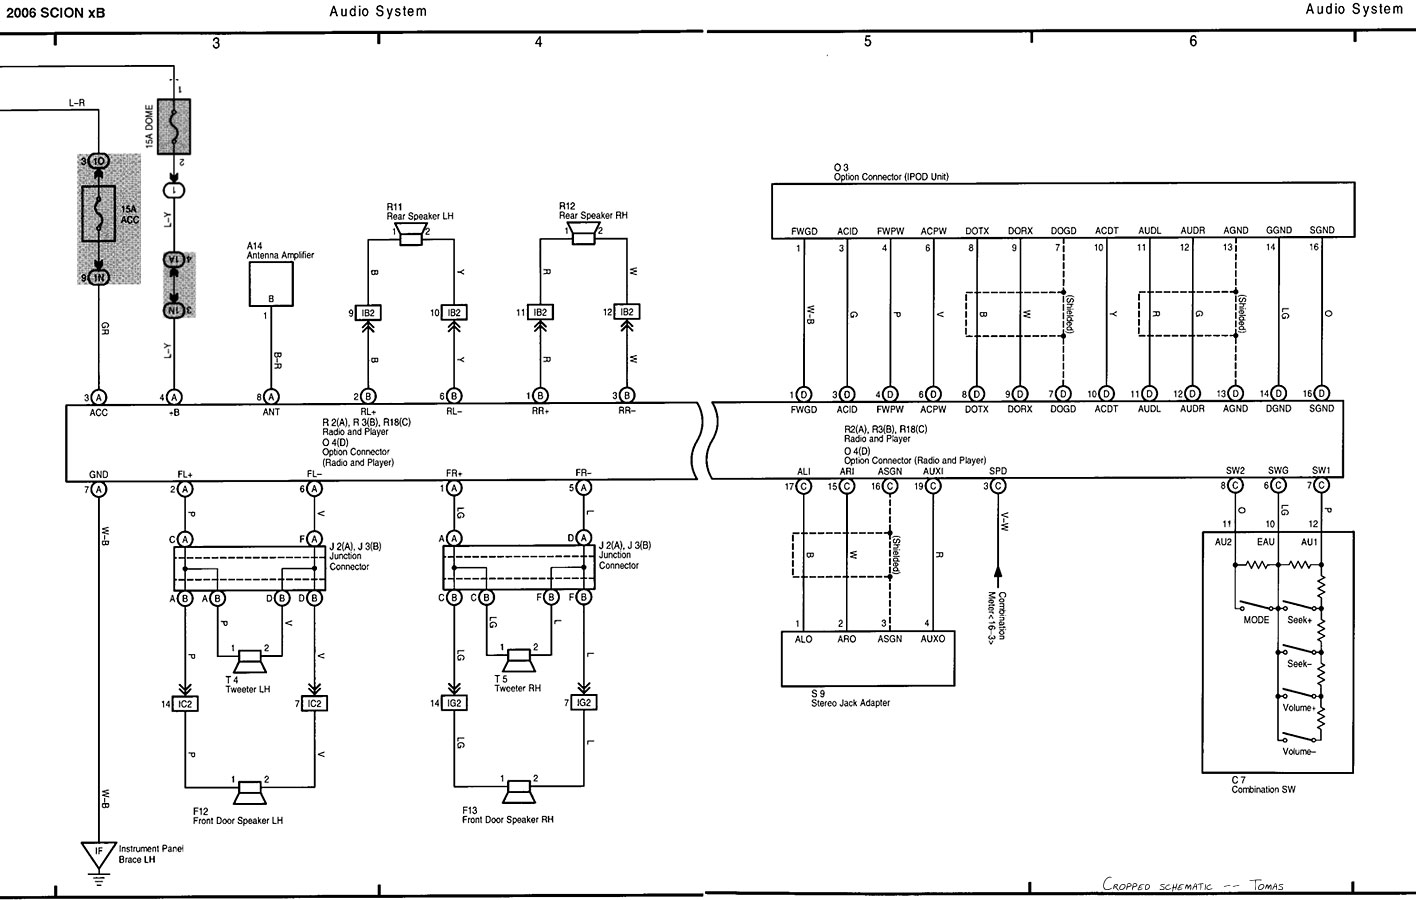 2005 scion tc radio wiring diagram?t\\\\\\\\\\\\\\\\\\\\\\\\\\\\\\\=1508751668 scion xa diagram wiring diagrams schematics